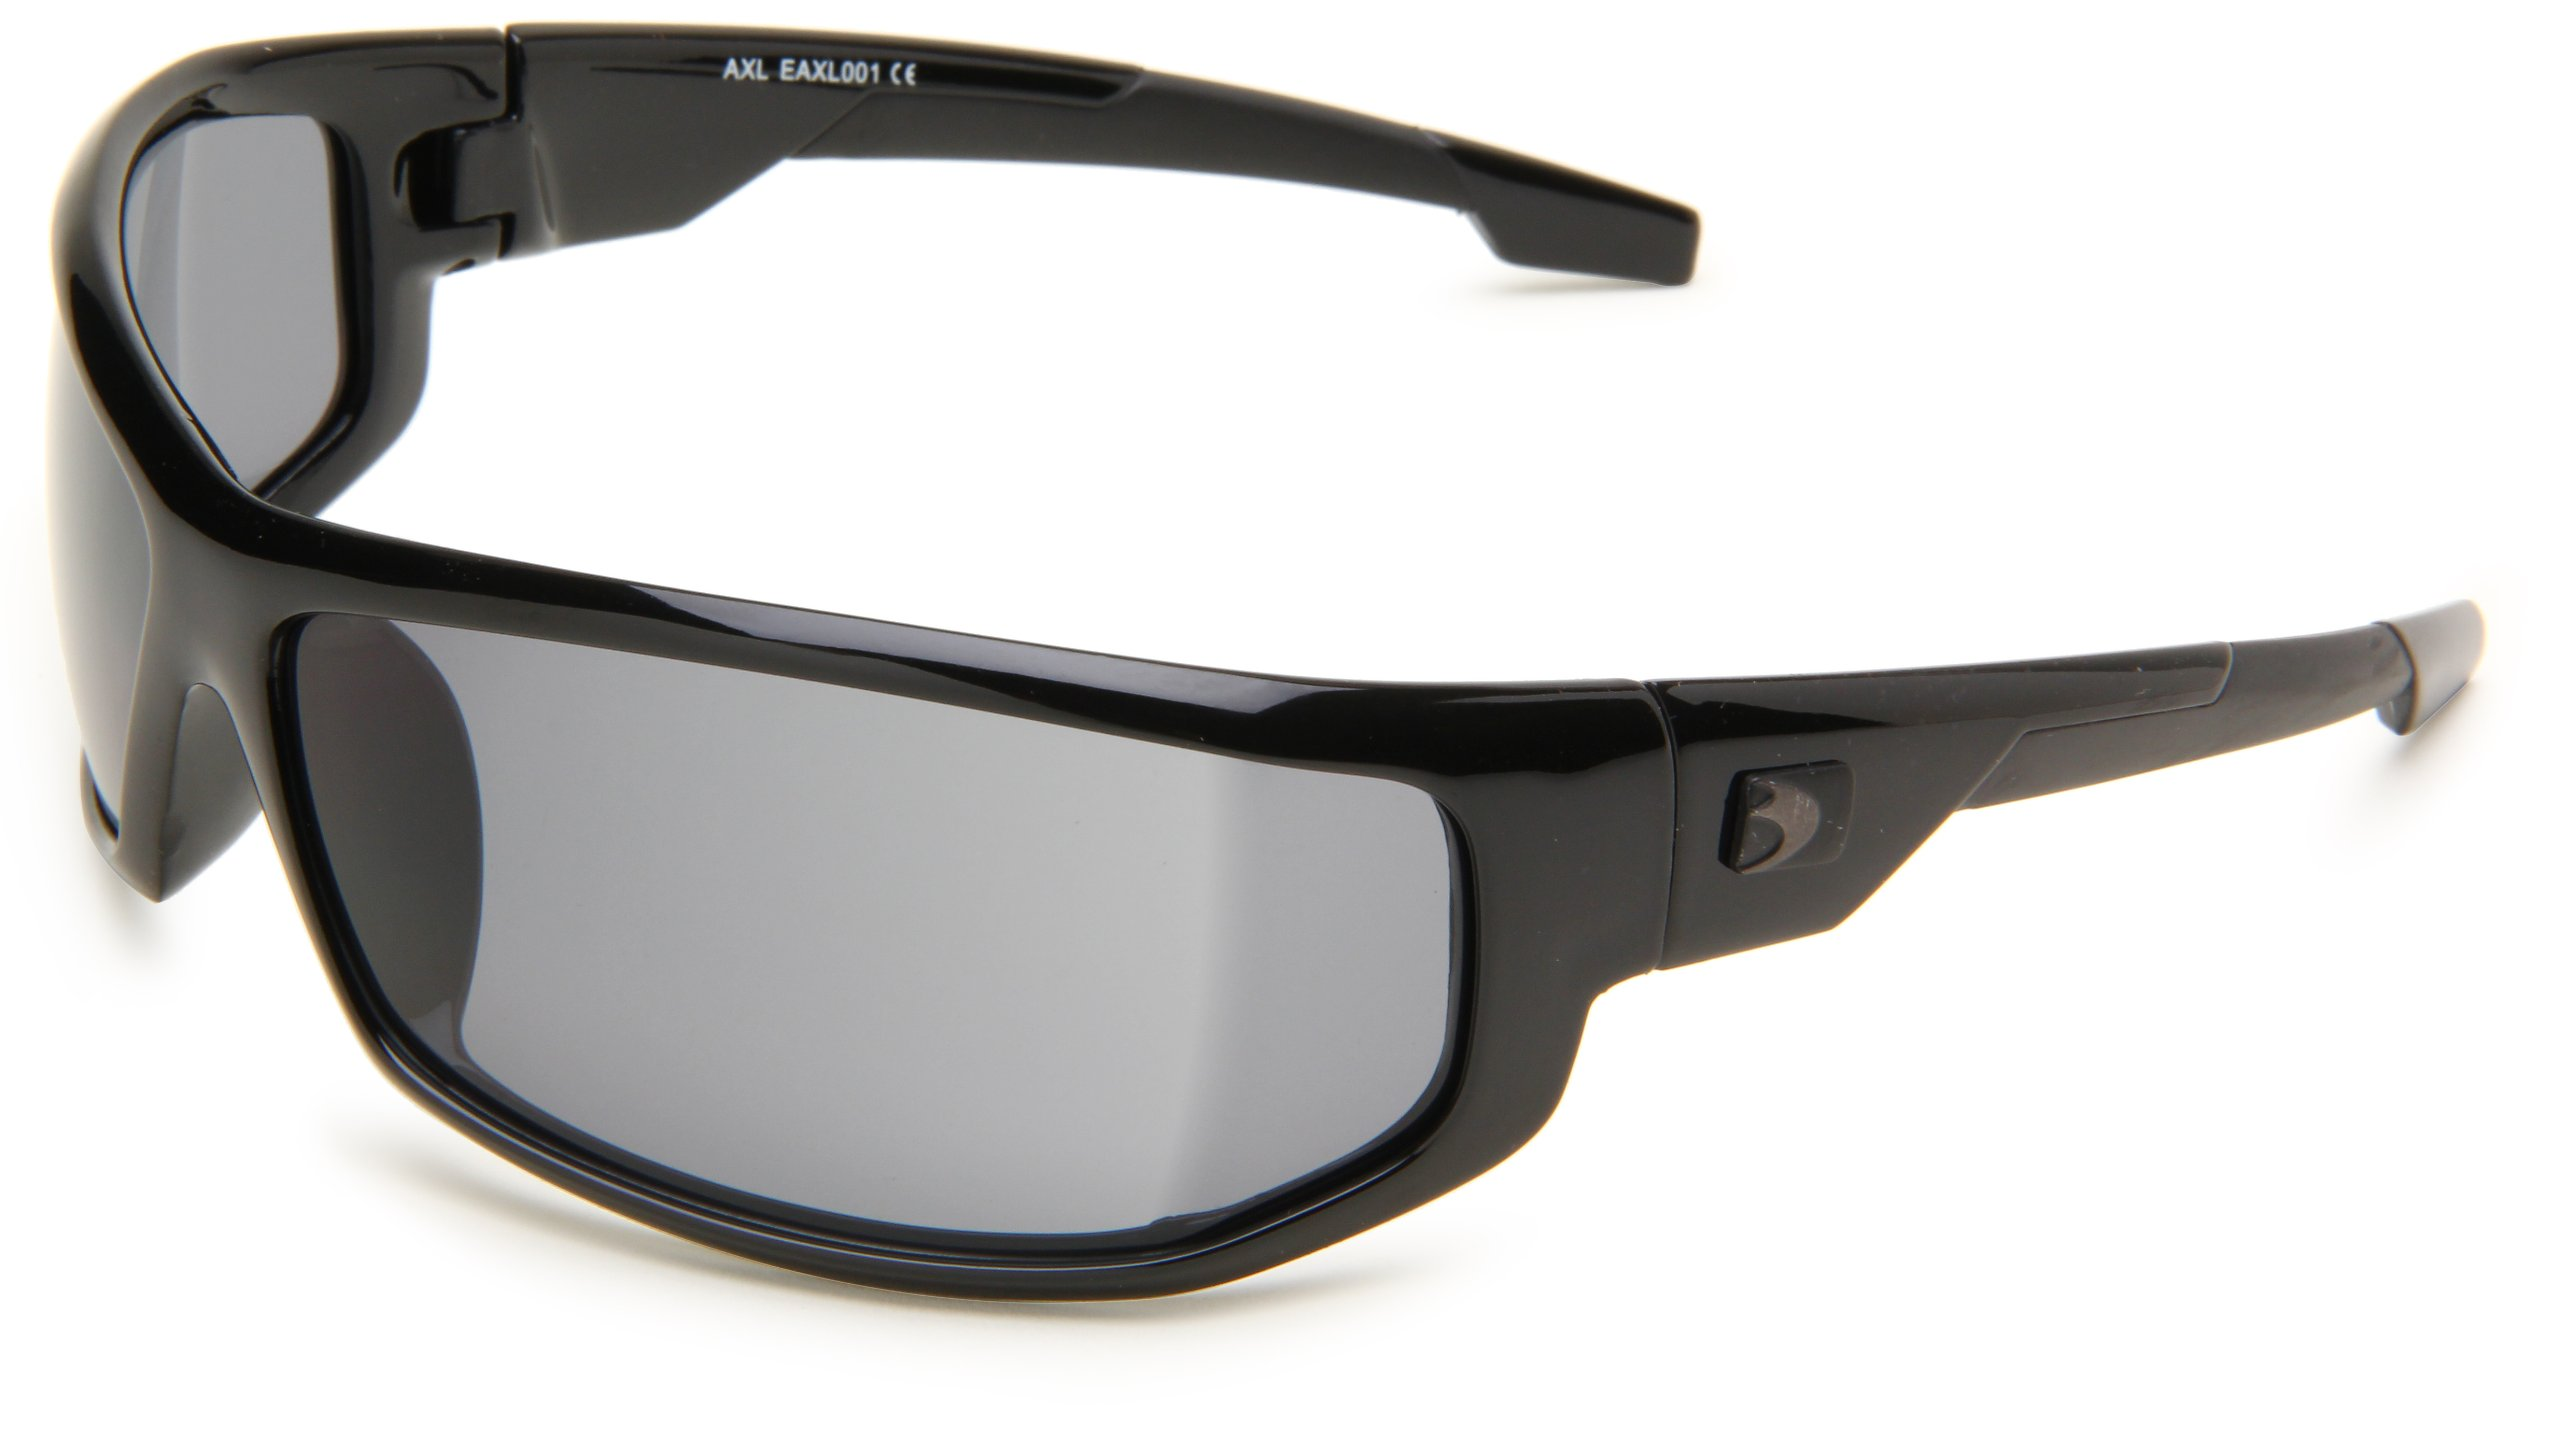 Bobster AXL EAXL001 Wrap Sunglasses,Black Frame/Smoked Lens,One Size